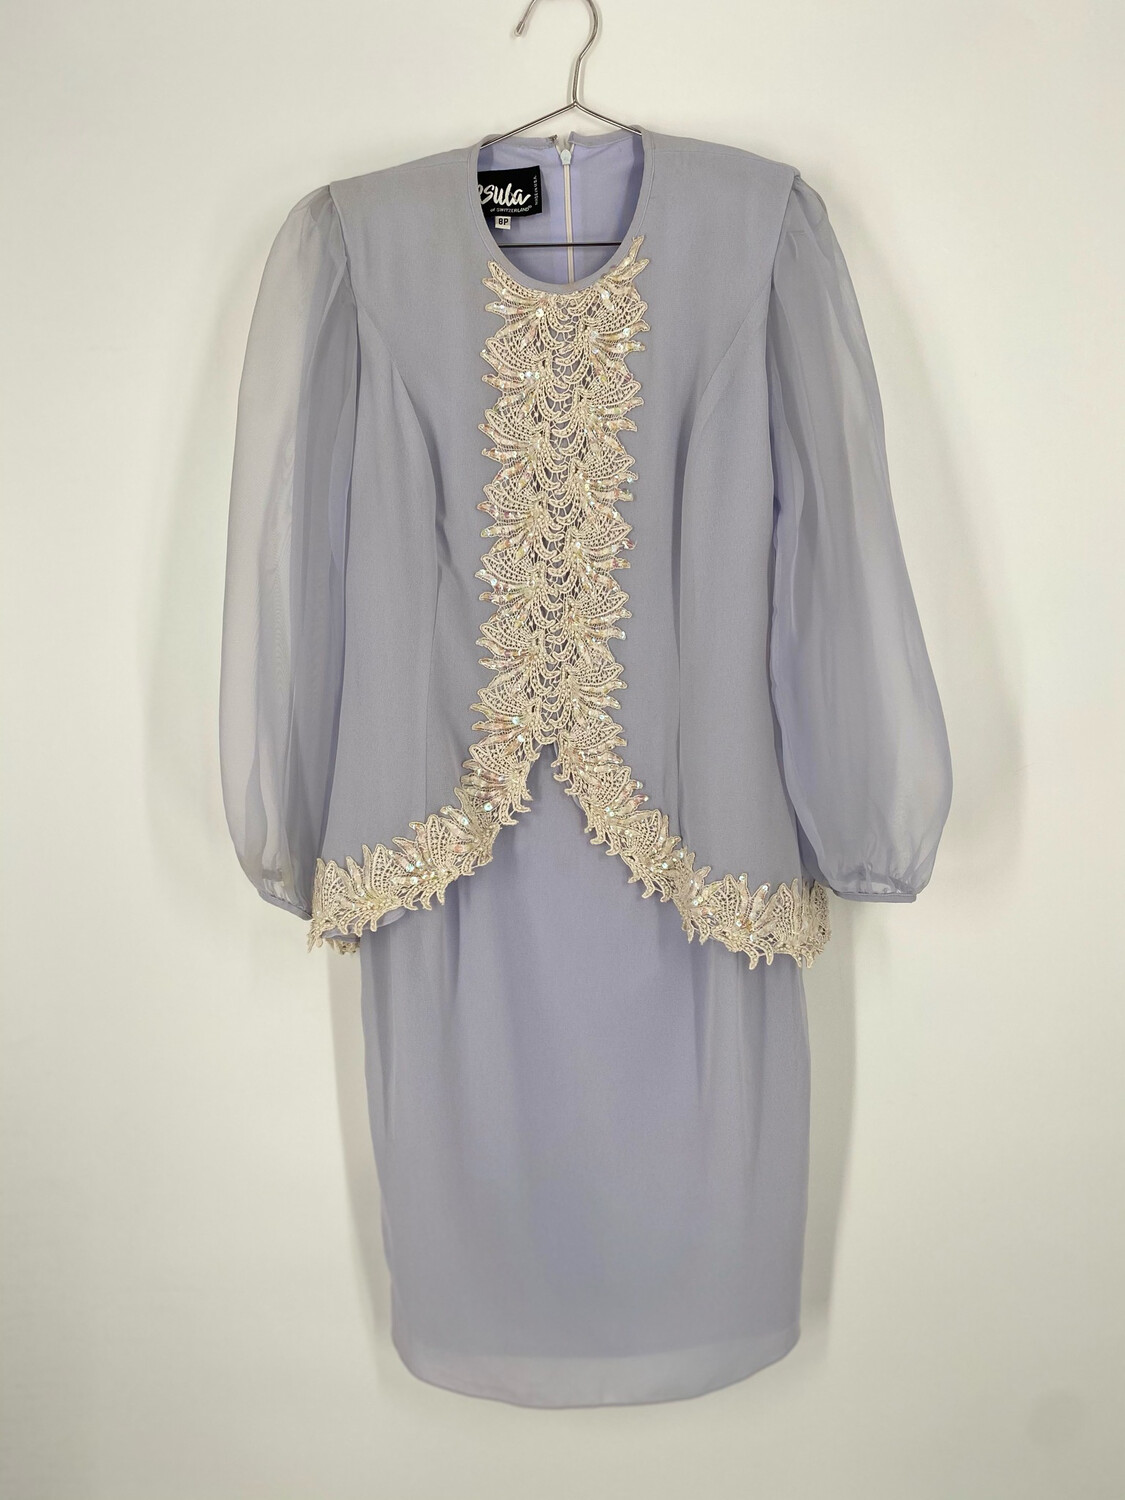 Ursula Of Switzerland Long Sleeve Dress With Embroidery Size M